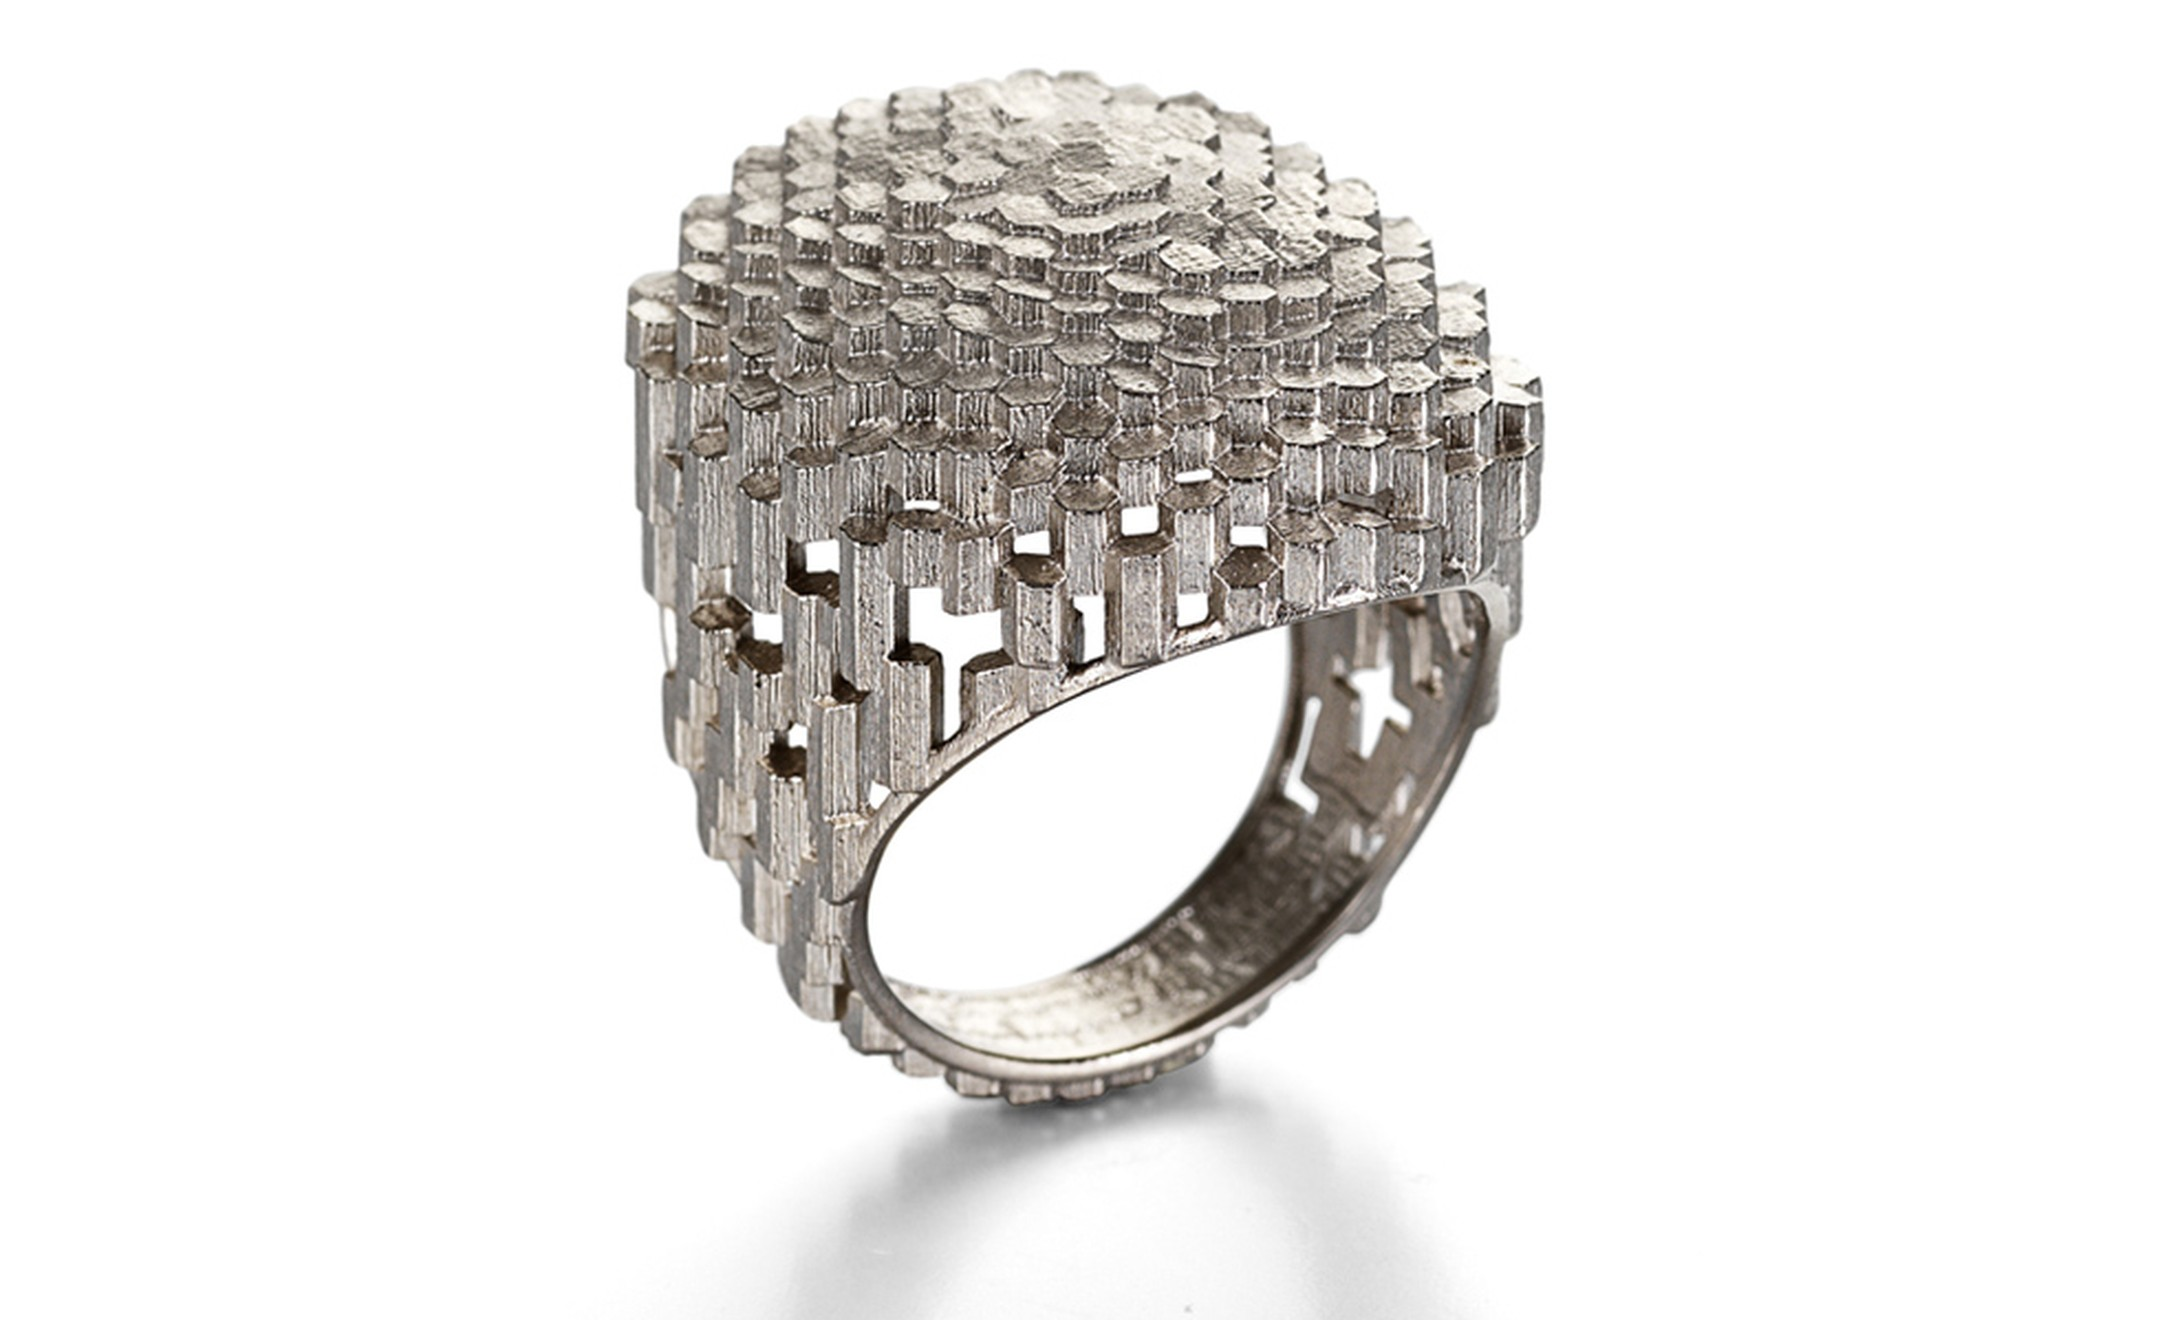 Hex Flat Oval Ring, 18ct white gold ring made of hexagonal block. By Jo Hayes-Ward. Price from £2,600